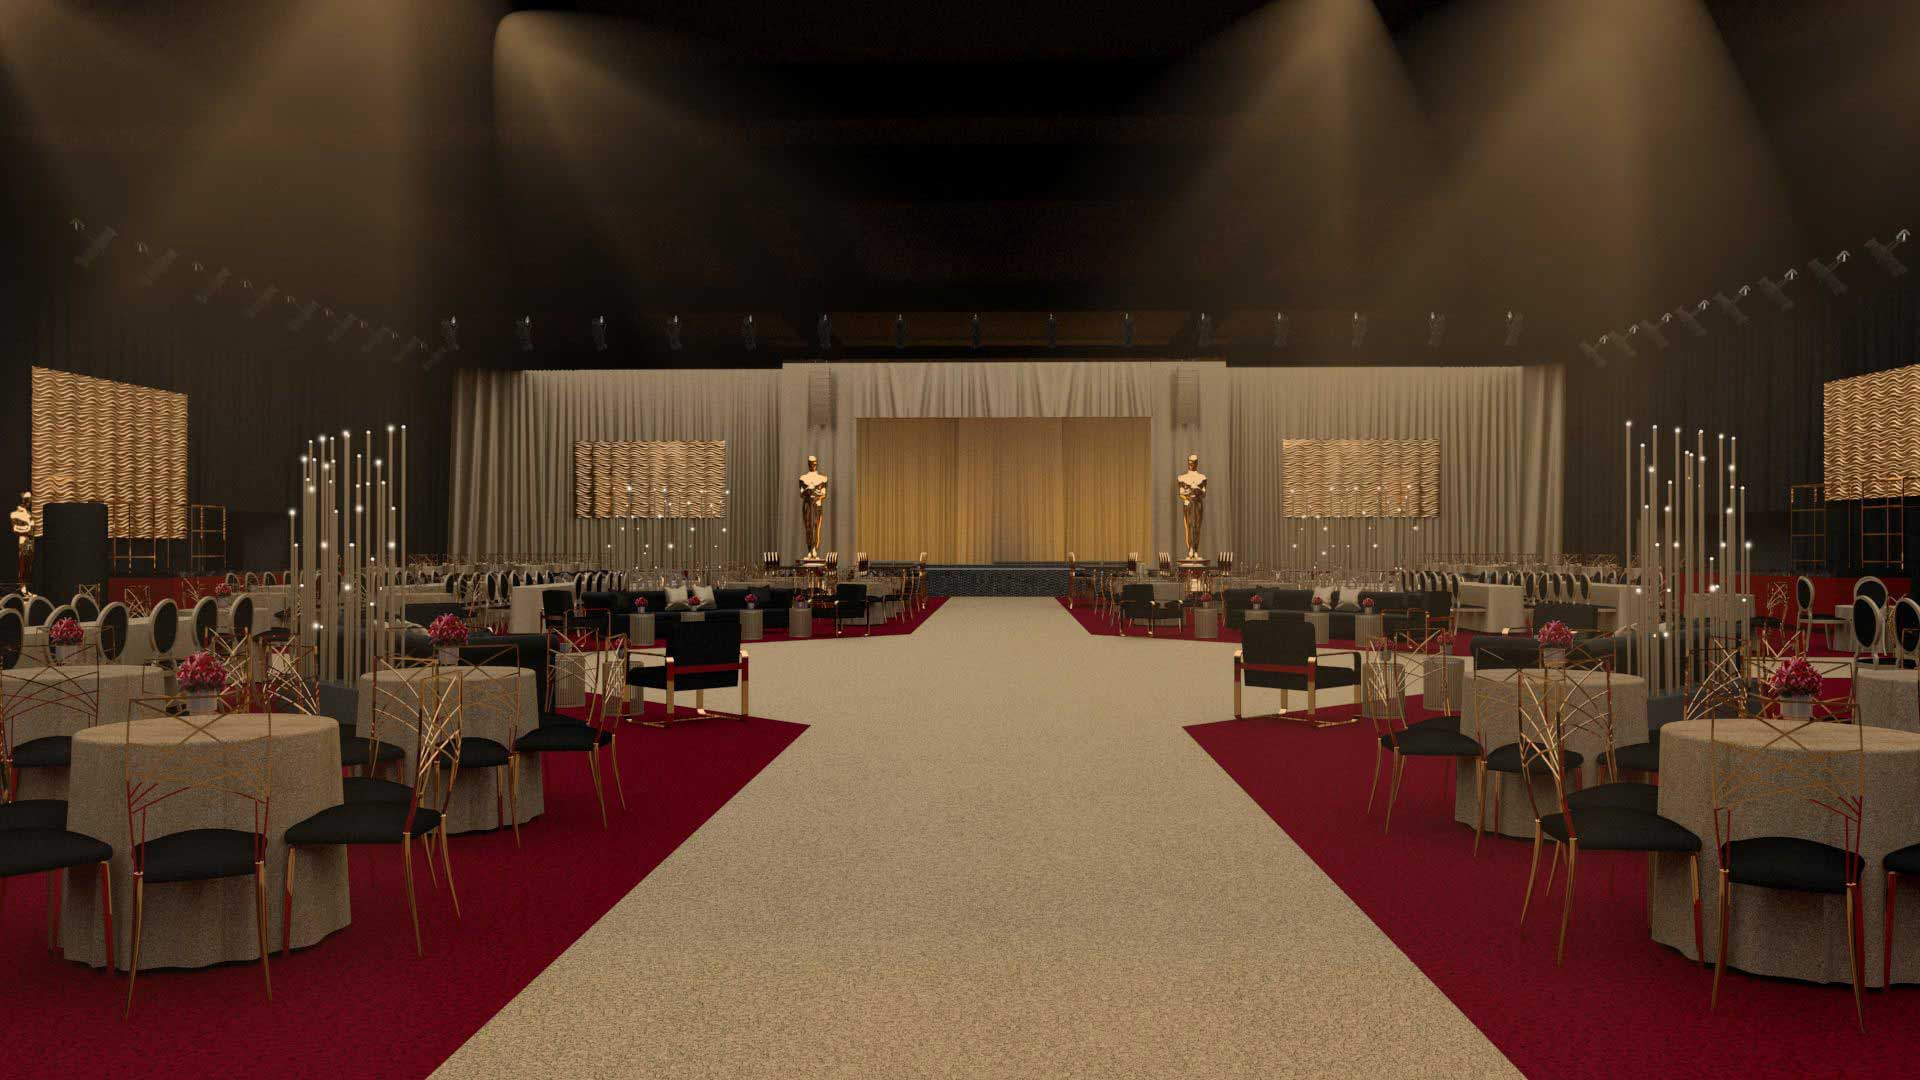 The event space for the Oscars afterparty in Hollywood, California